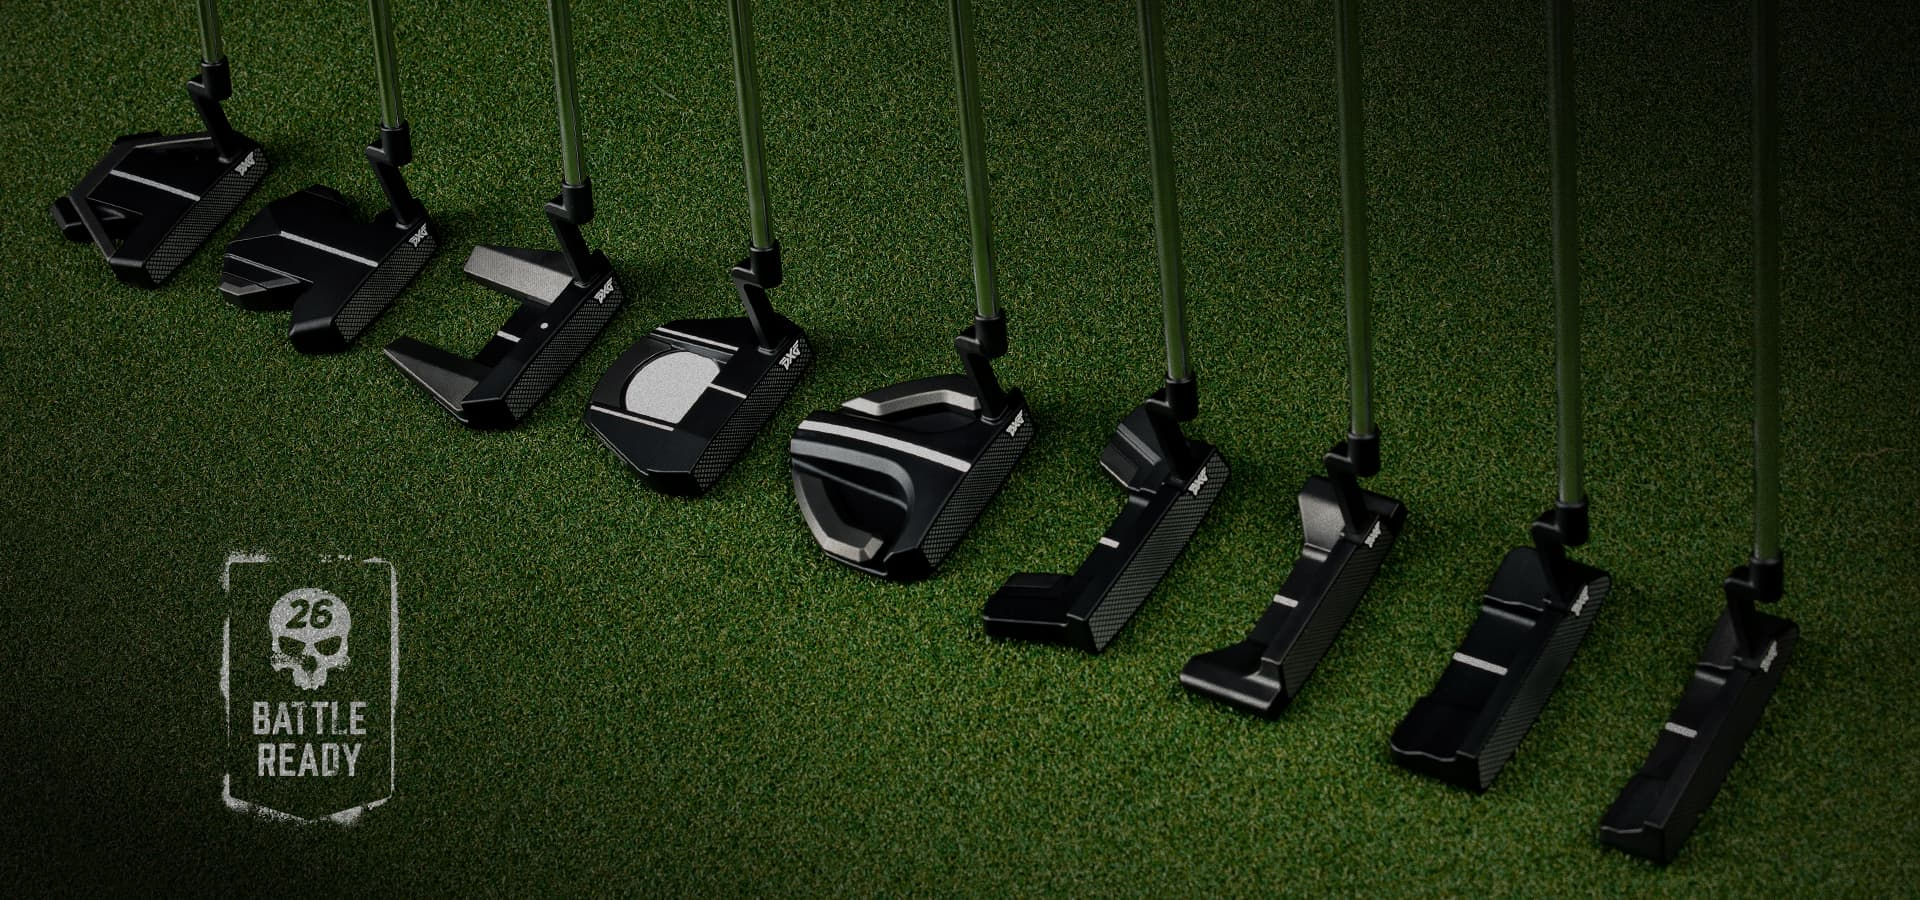 PXG Battle Ready Putter lineup on the putting green